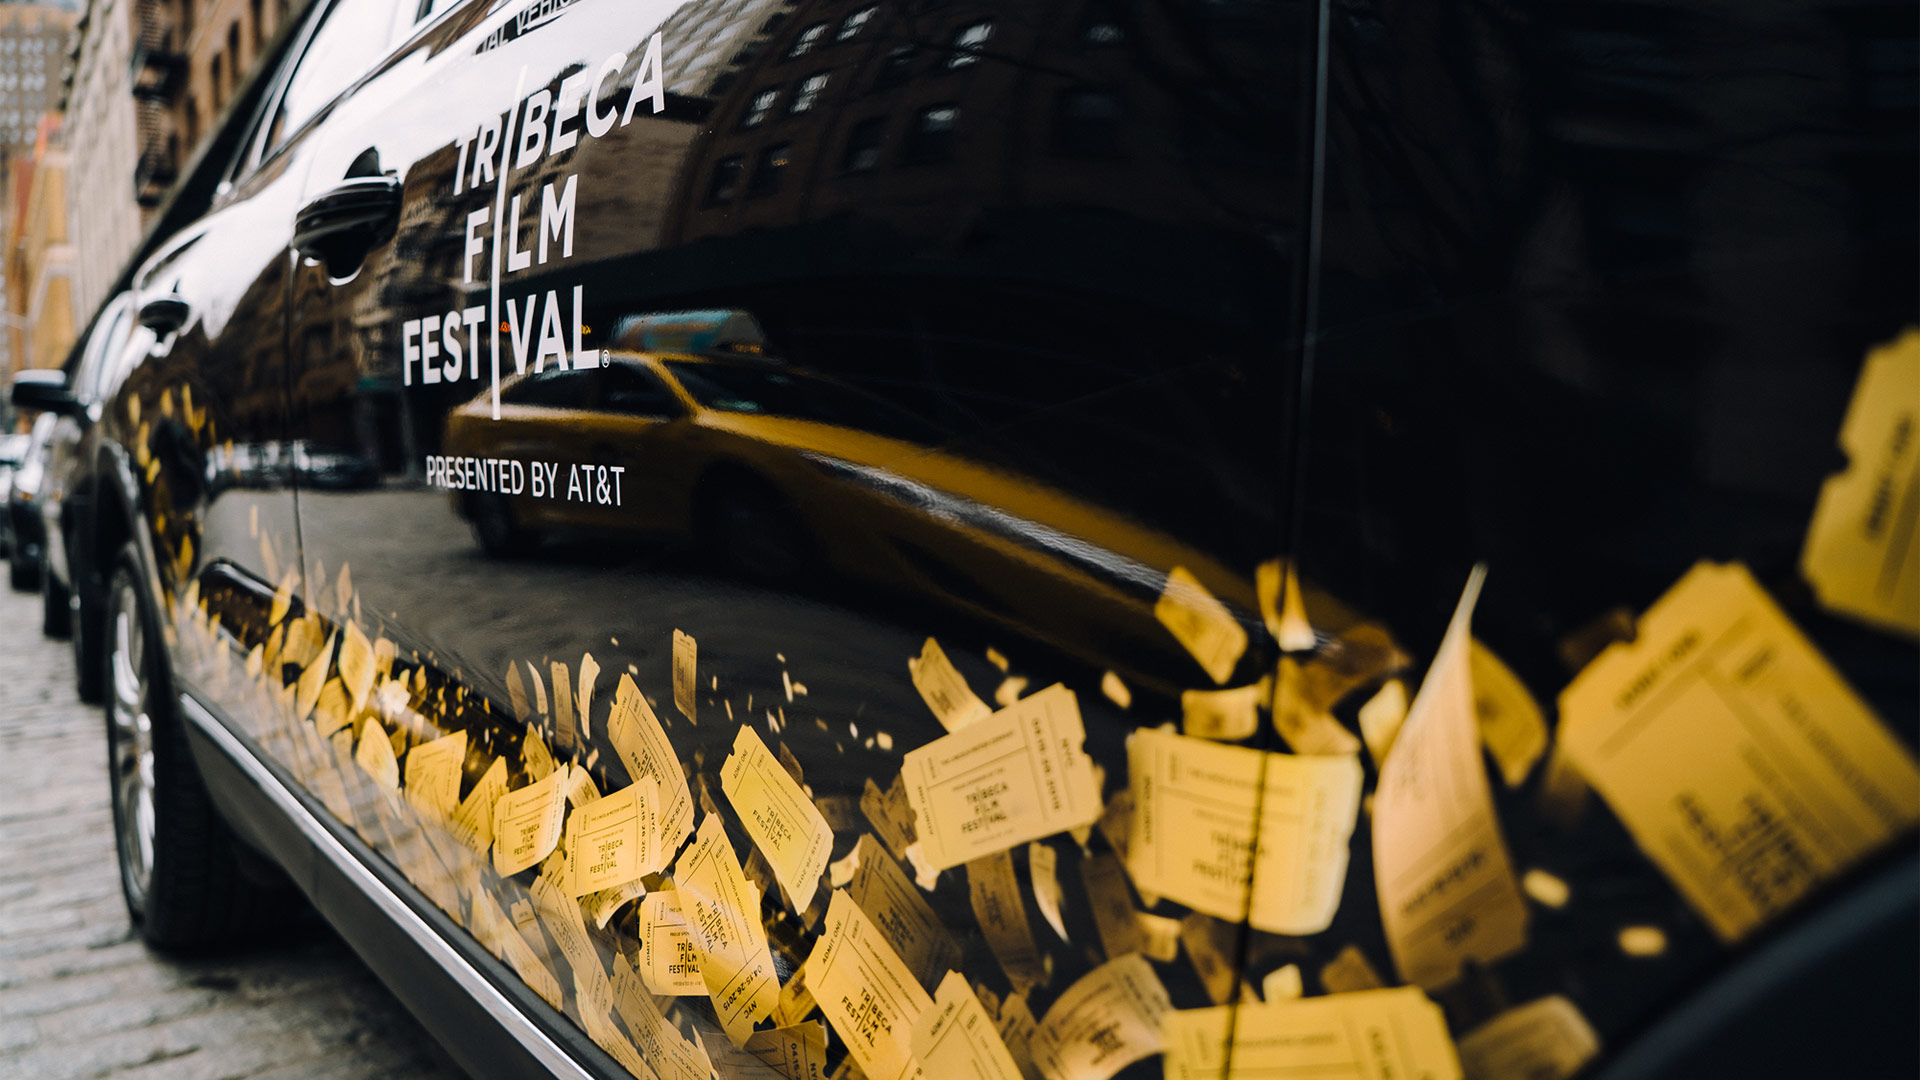 Tribeca2015-VehicleWrap2.jpg